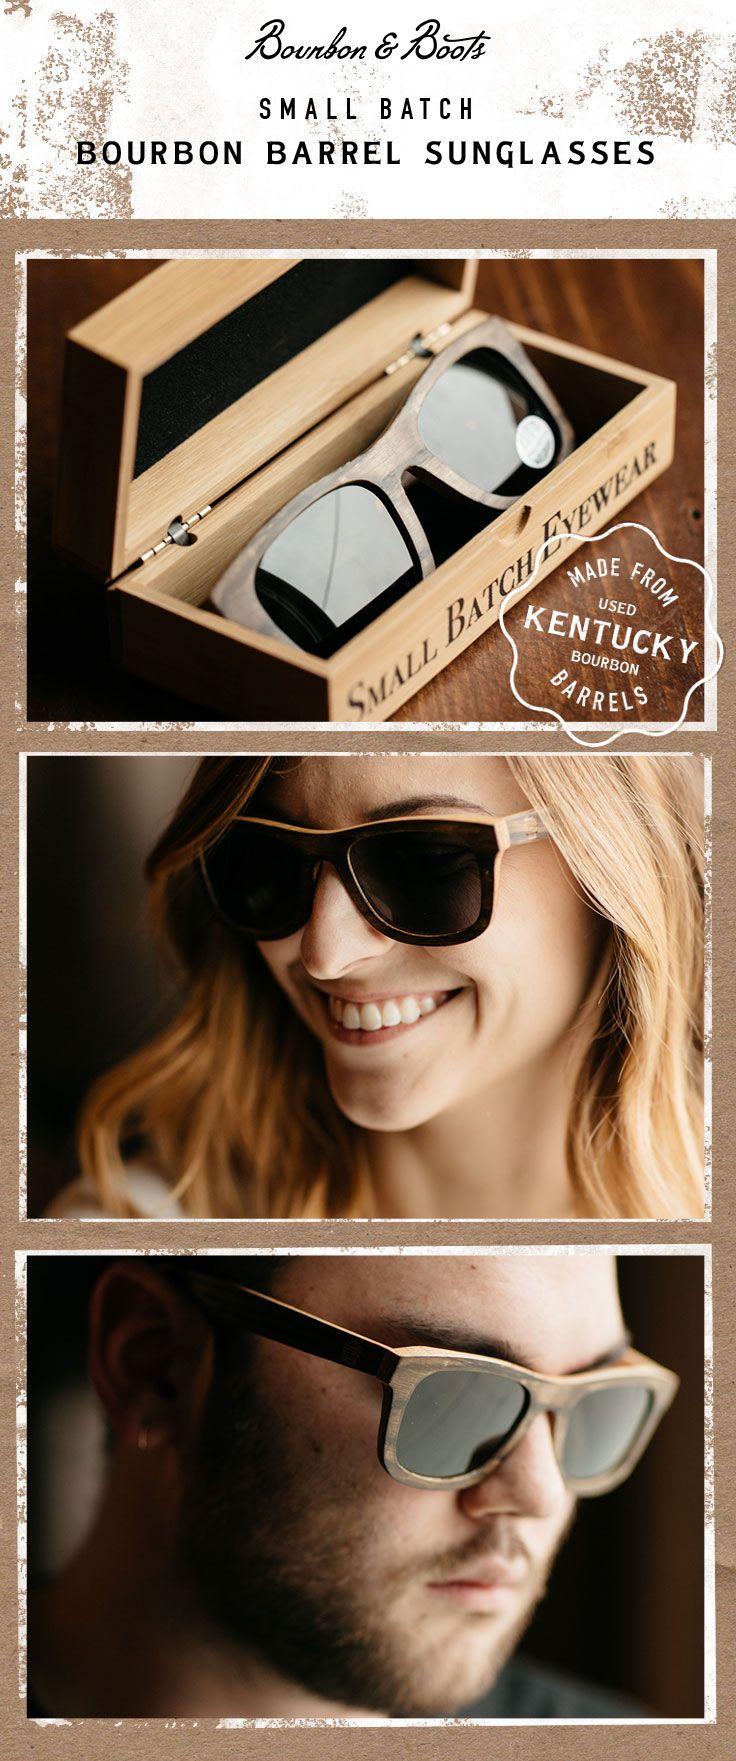 $119.00 The perfect stylish and functional gift for the Bourbon Lover. These unique high quality polarized sunglasses are unlike any other Wooden sunglass on the market. They are made exclusively from used White Oak Kentucky Bourbon Barrels and feature 100% polarized smoke tint lenses and double hinged construction to keep them from slipping off your head. Authenticity Certificate Indicates the Brand of Bourbon. Ships in a Custom Oak Case for Storage & Care